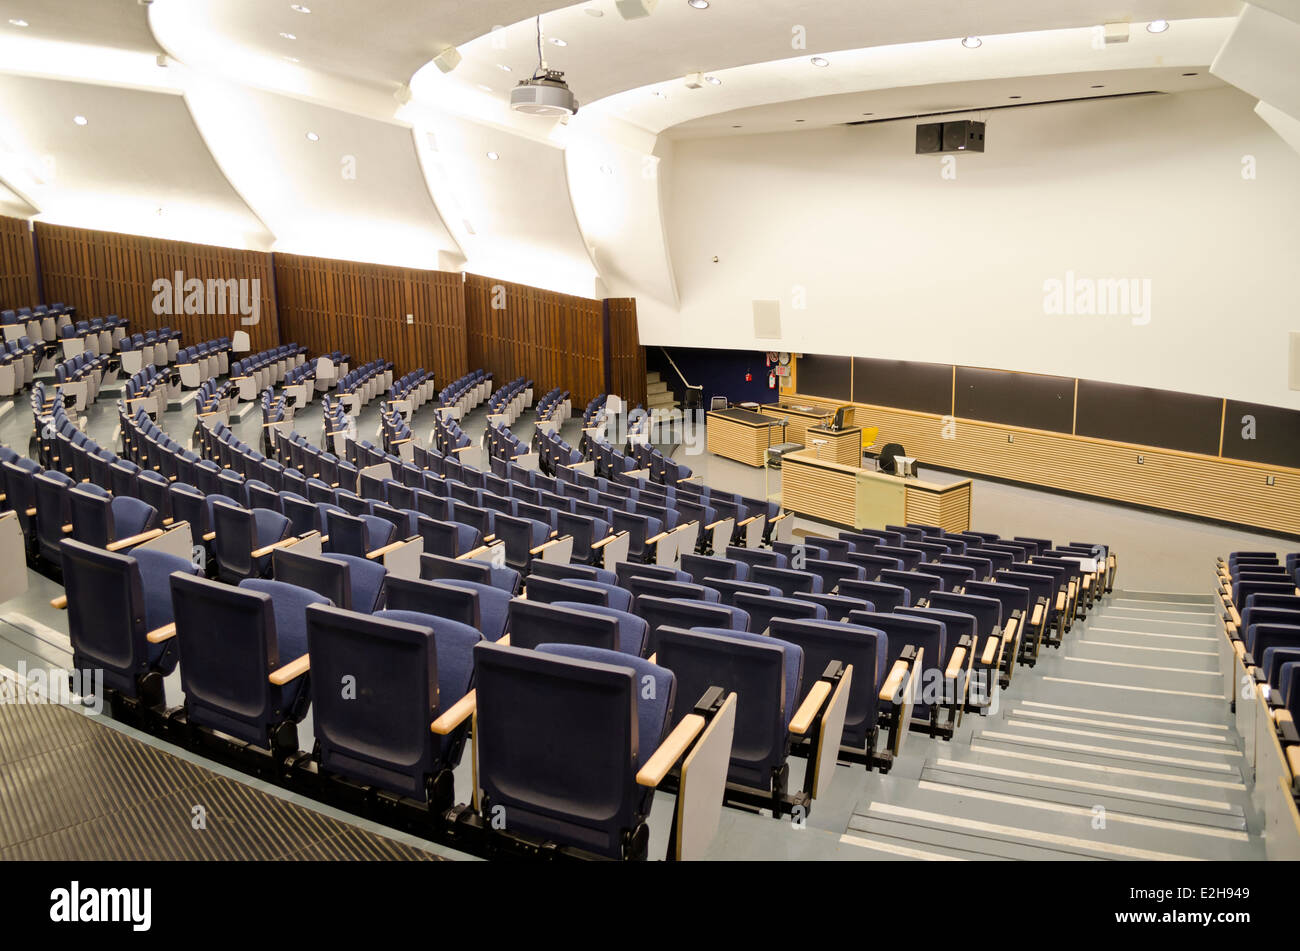 University lecture hall or lecture theatre.  Large empty college classroom. - Stock Image